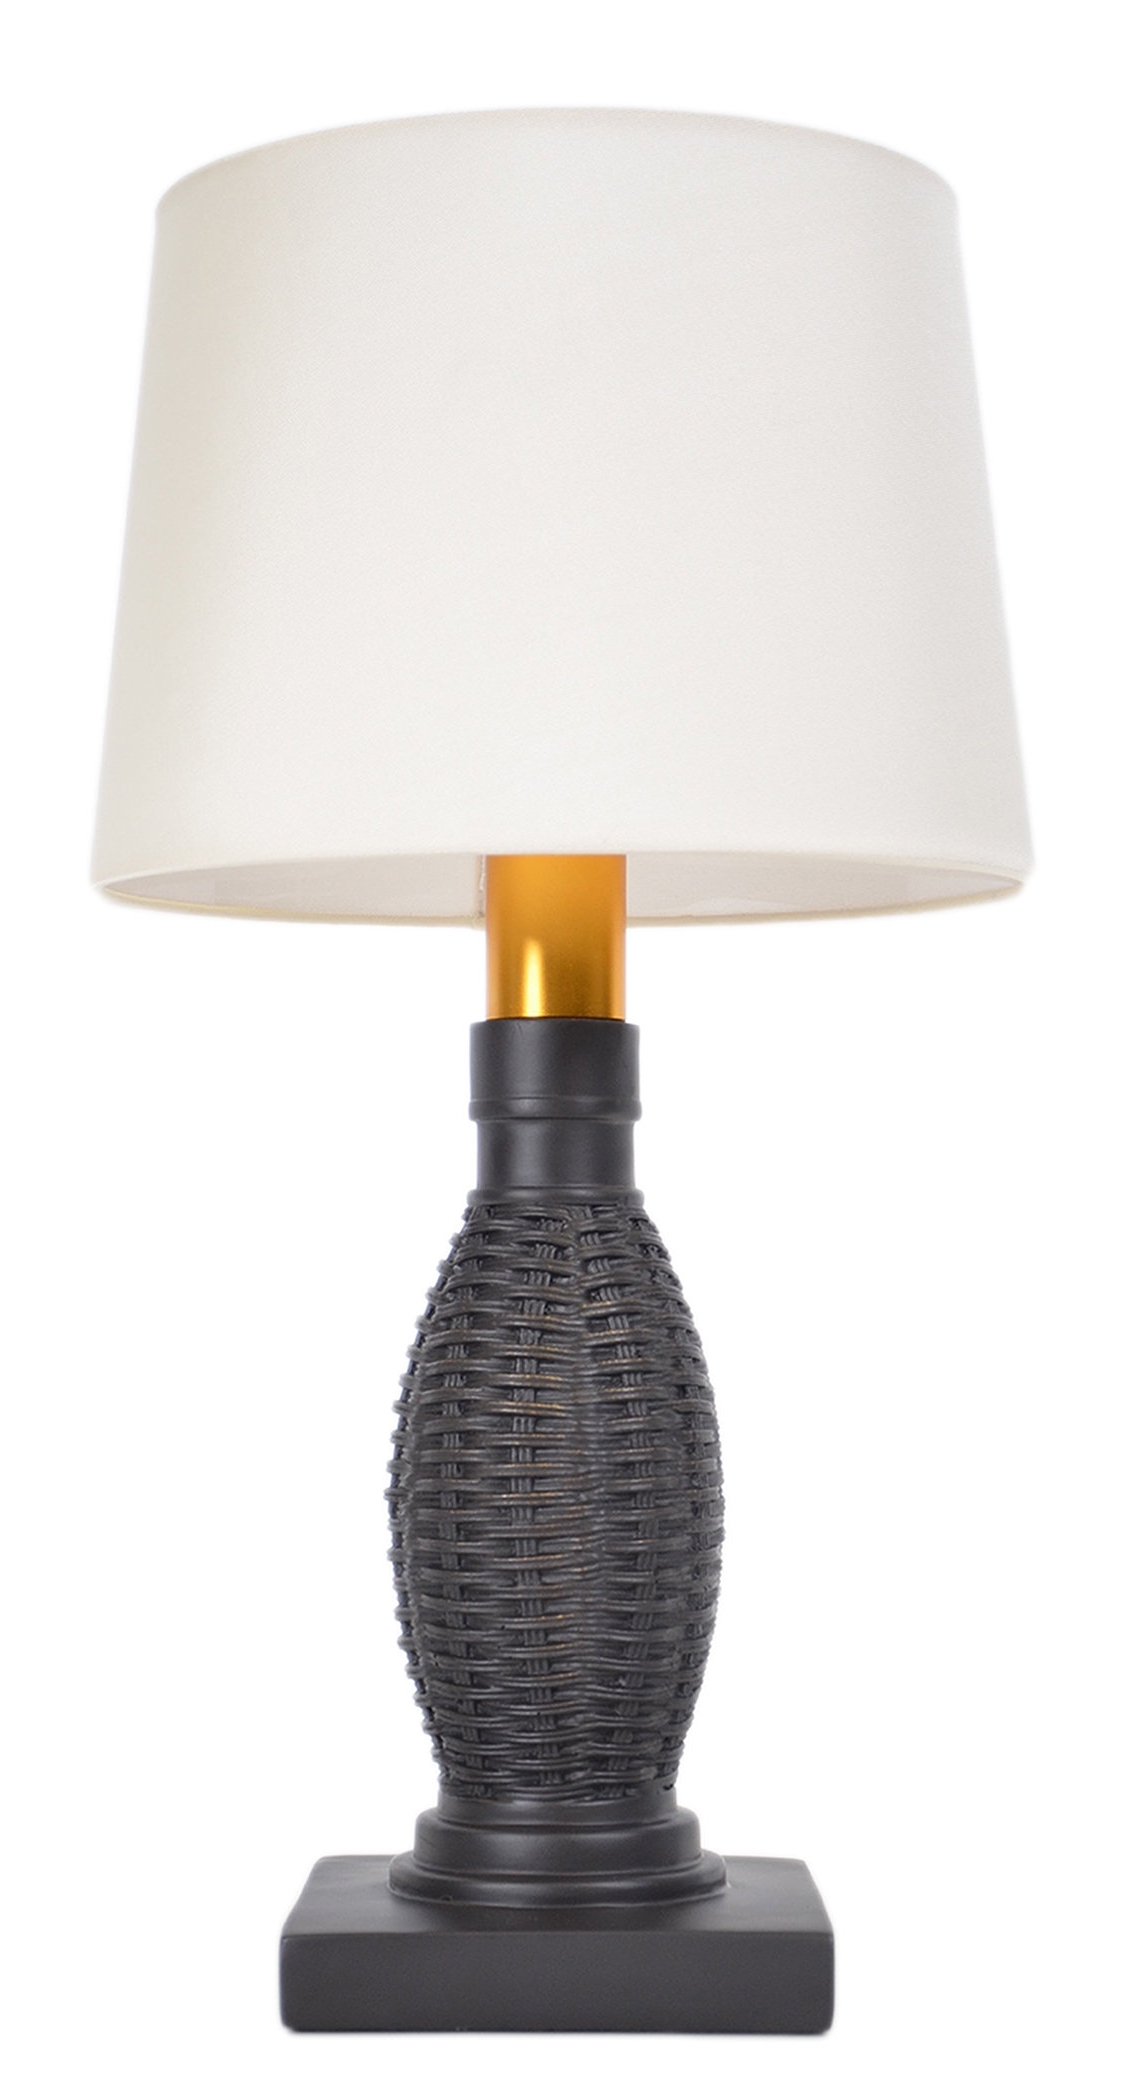 Famous Cordless Living Room Table Lamps Regarding Unique Wireless Table Lamps Torch Light All Weather 24 Lamp Reviews (View 12 of 15)